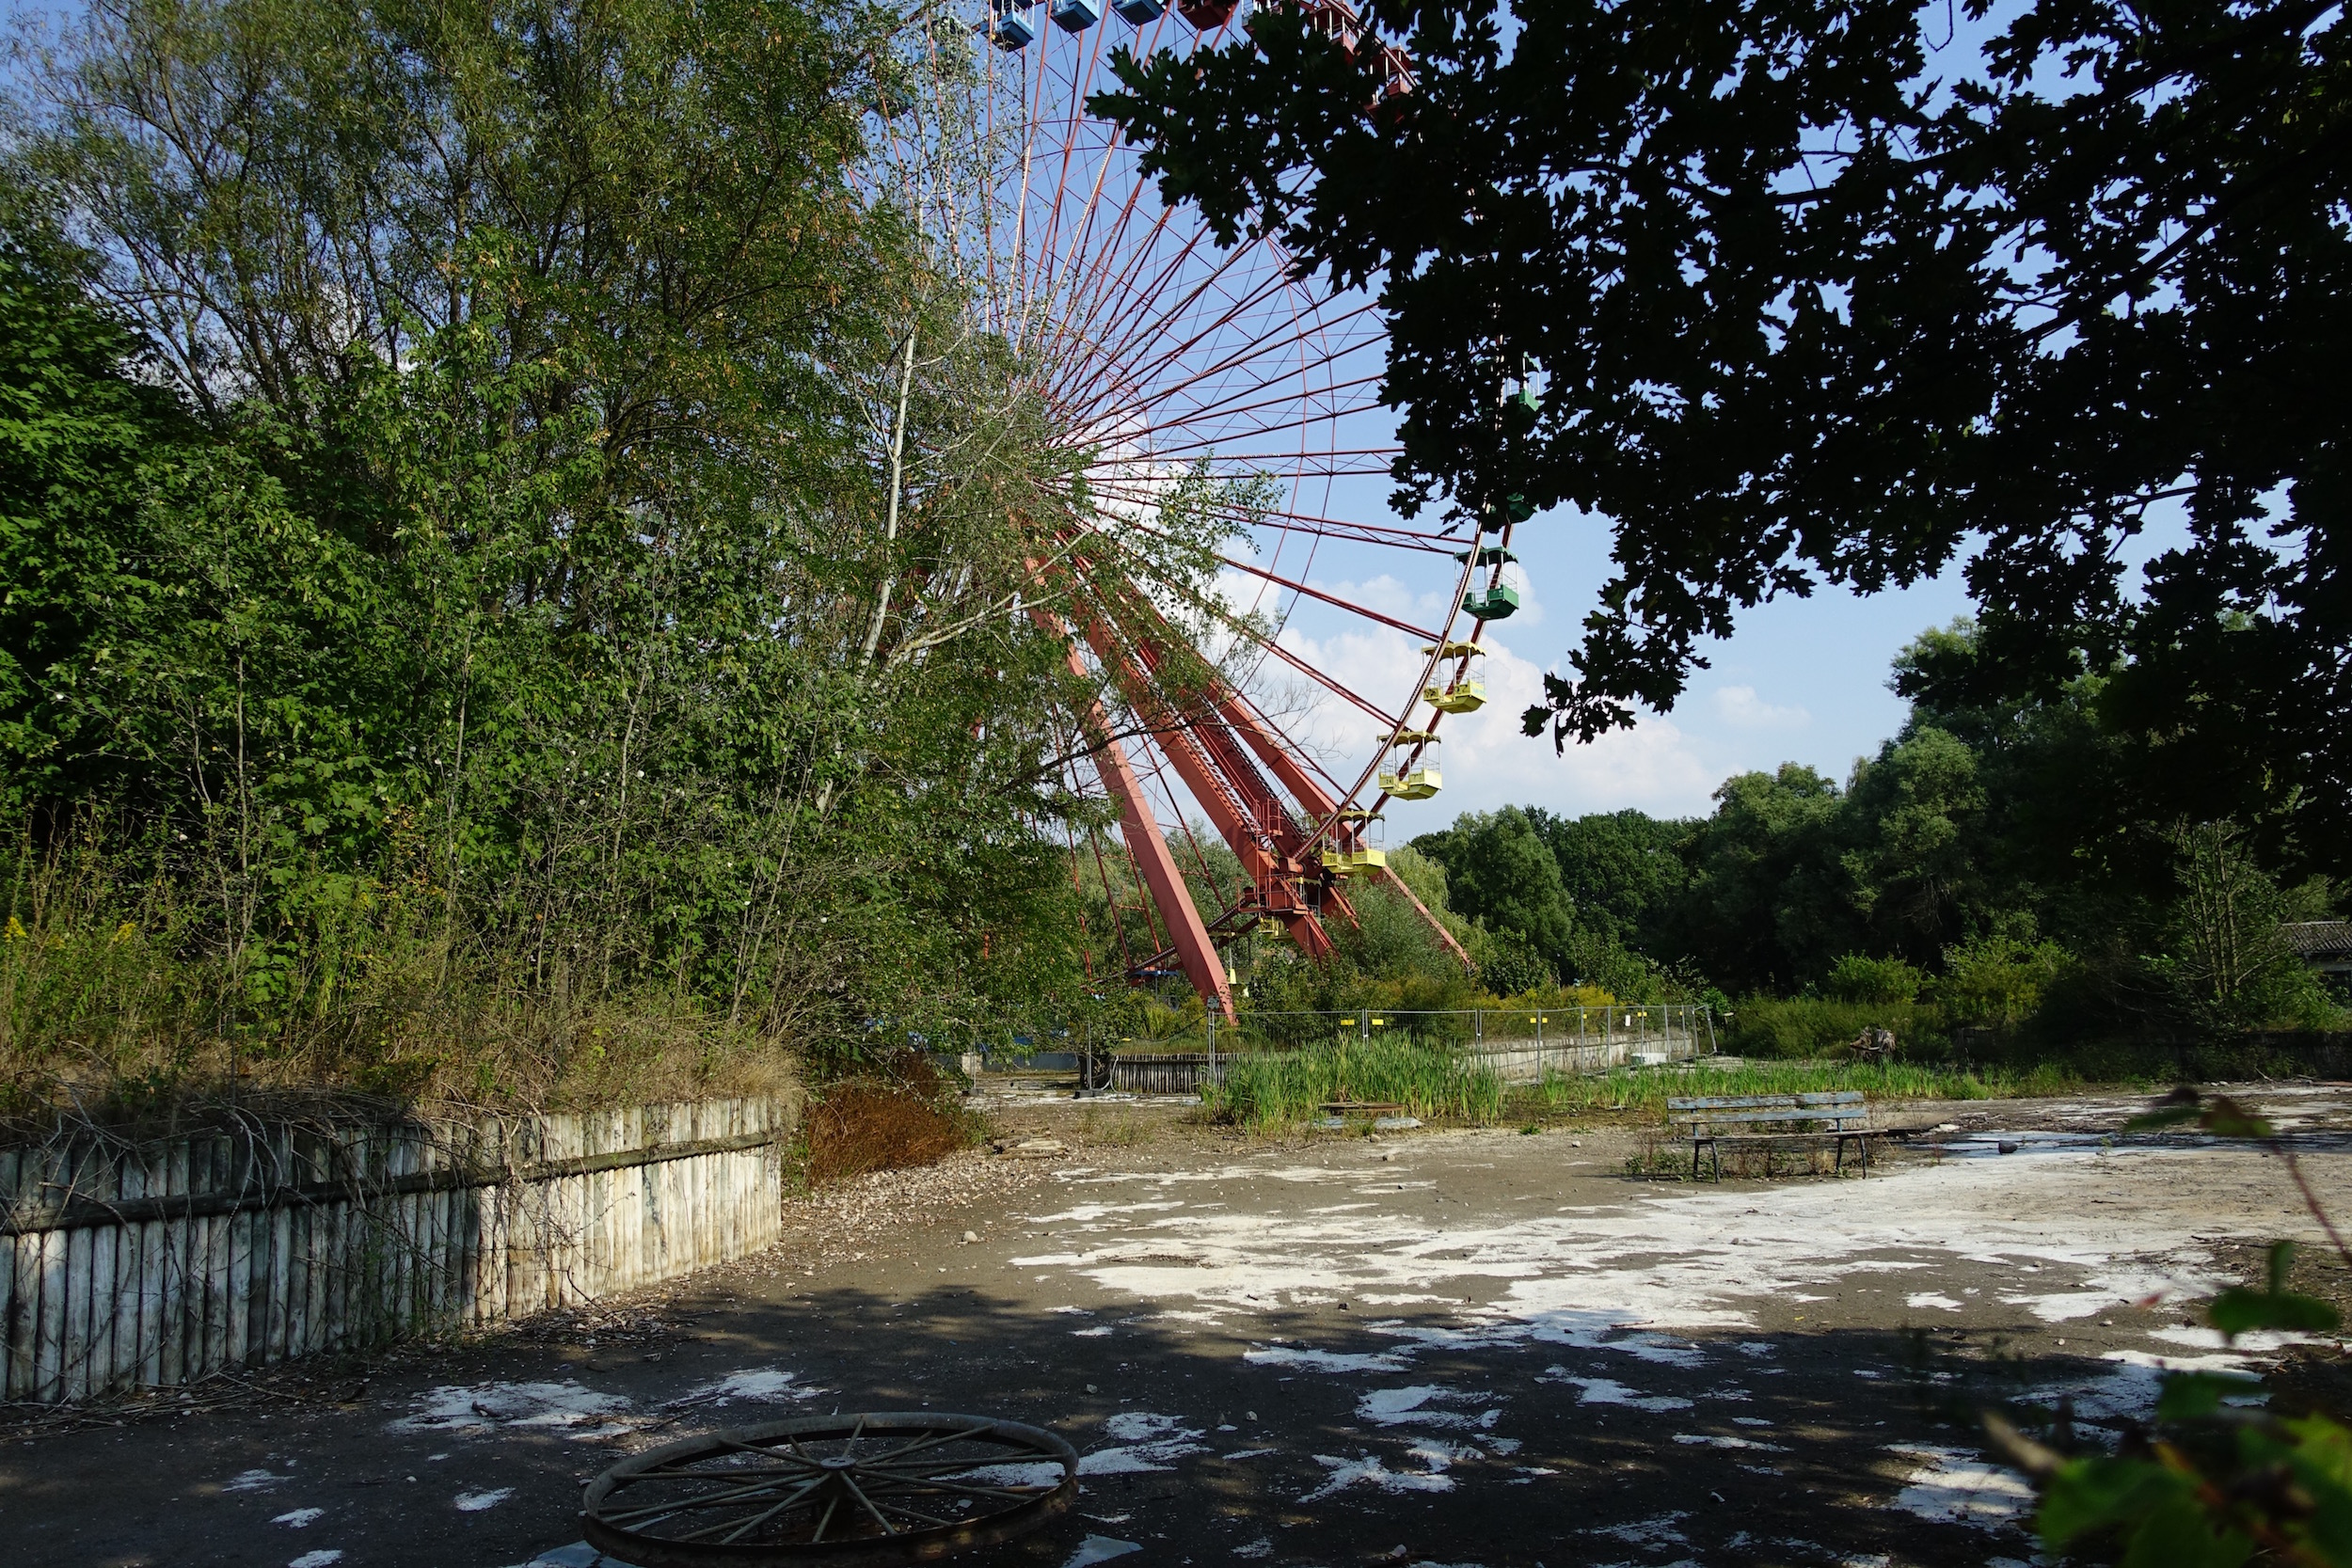 The abandoned ferris wheel